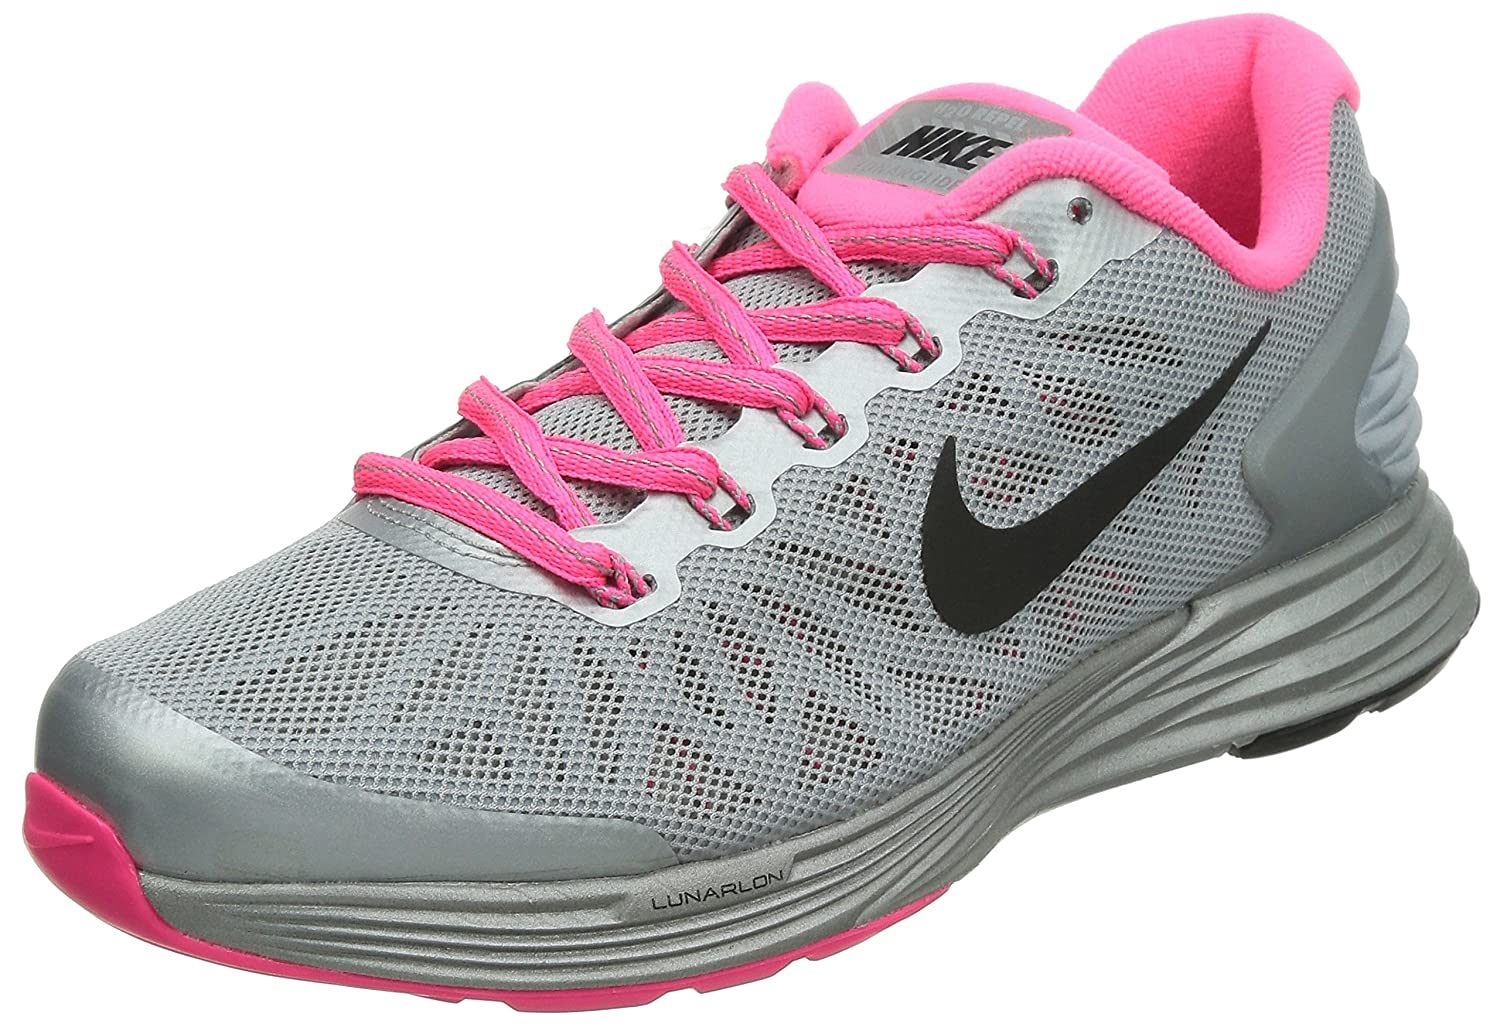 huge discount 722e6 598a2 Amazon.com  Nike Lunarglide 6 Flash (GS) Running Trainers 685714 Sneakers  Shoes (UK 5.5 us 6Y EU 38.5, Wolf Grey Black Hyper Pink Reflective Silver  001) ...